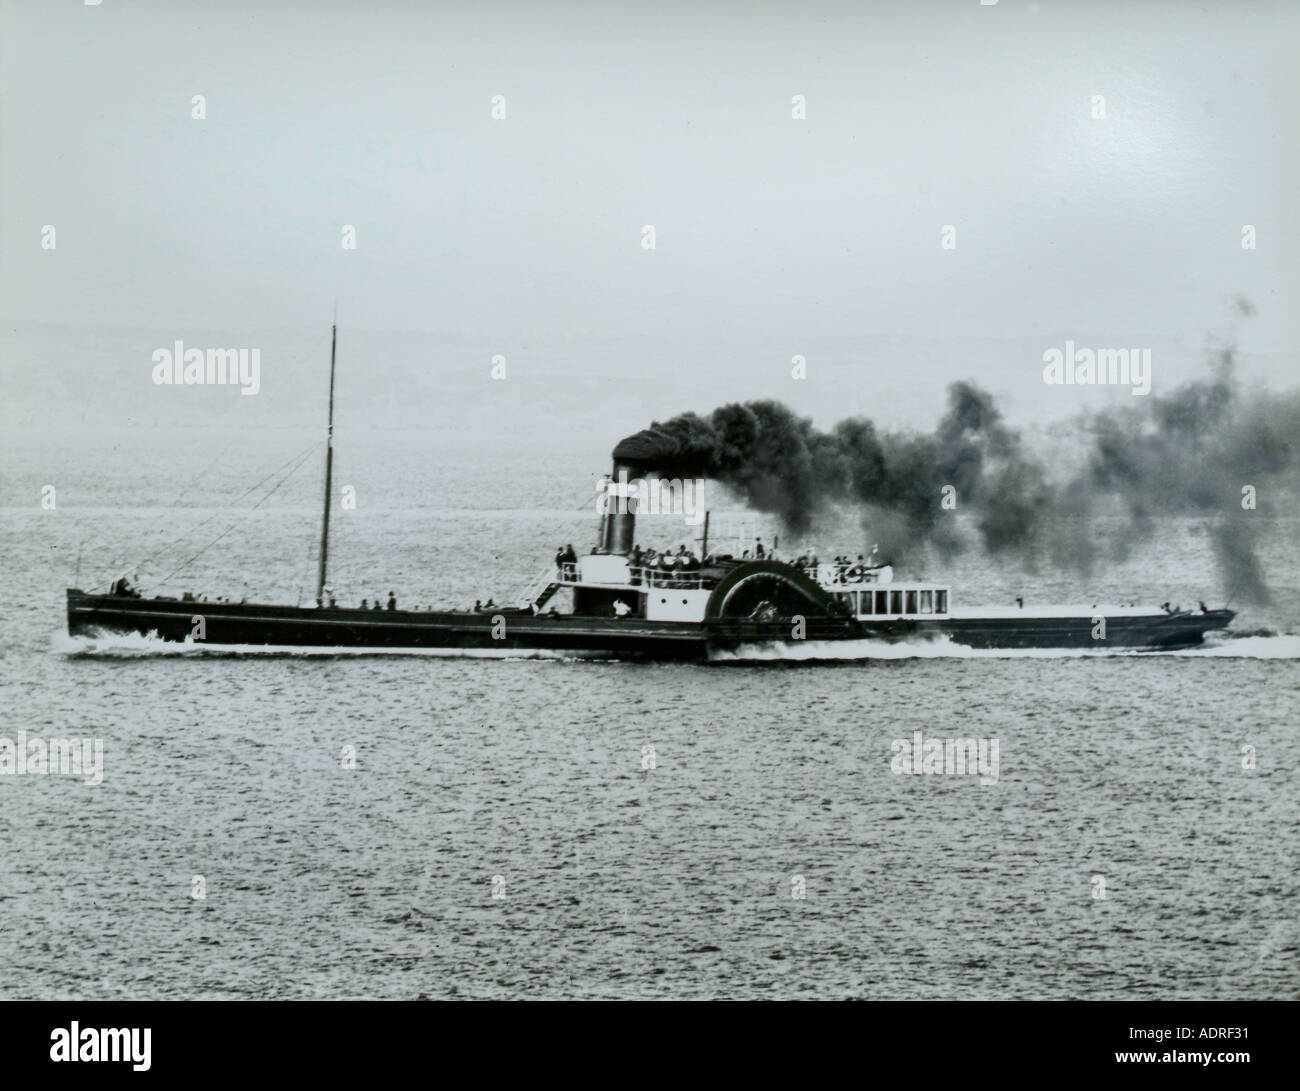 UK Scotland Firth of Clyde off Greenock the Paddle Steamer